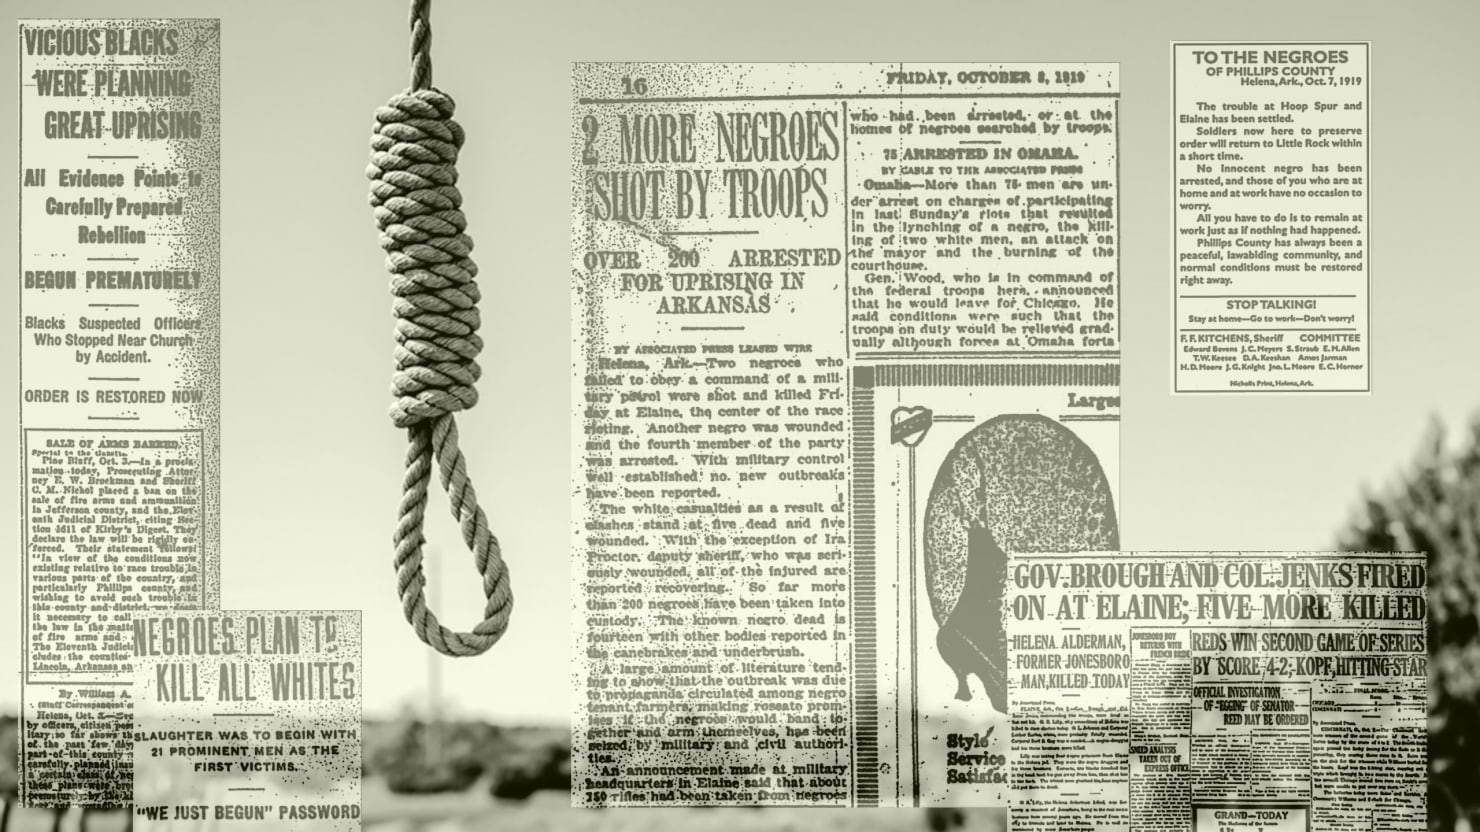 America's Forgotten Mass Lynching: When 237 People Were Murdered in Arkansas